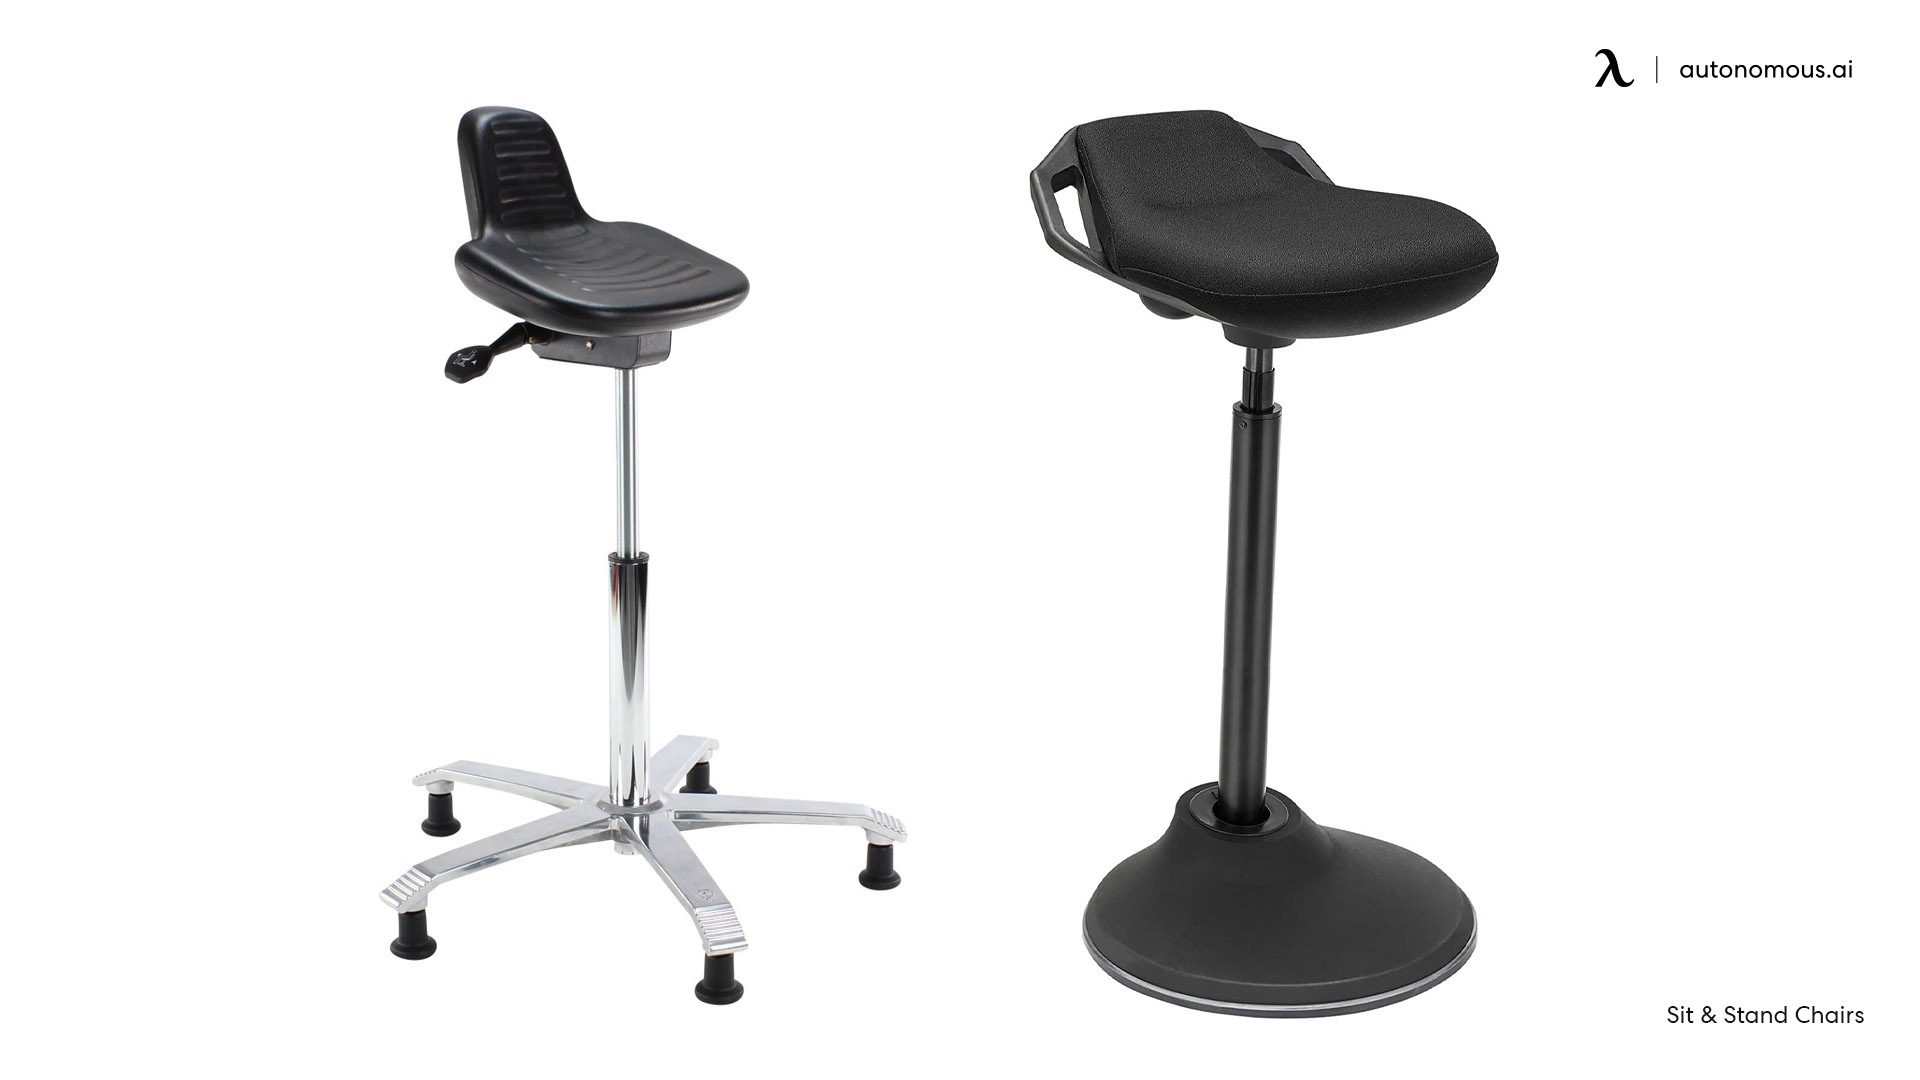 Photo of Sit & Stand Chairs